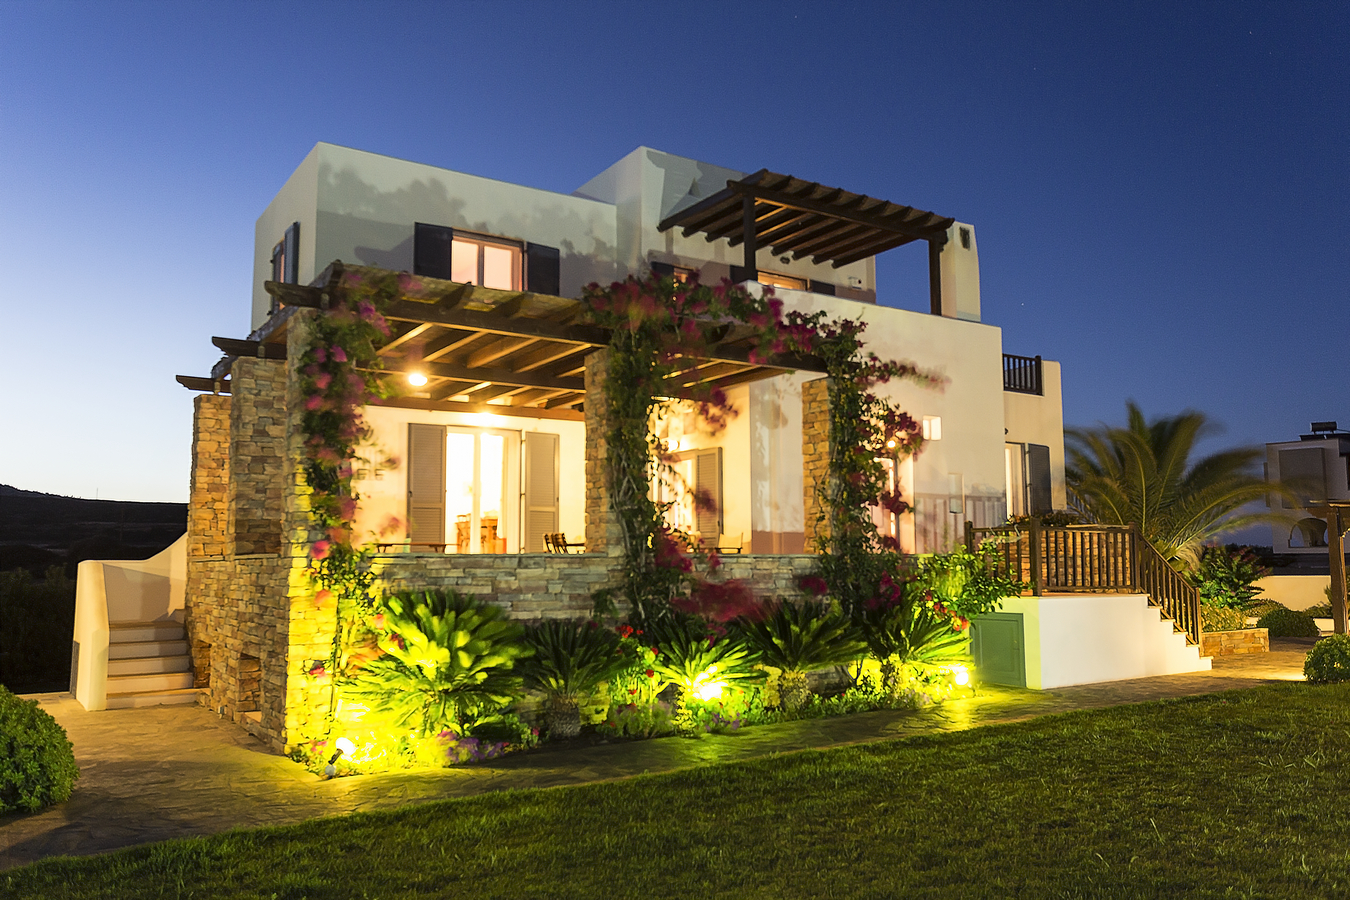 Single Family Home for Sale at Elan Vital Rhodes, Southern Aegean, Greece